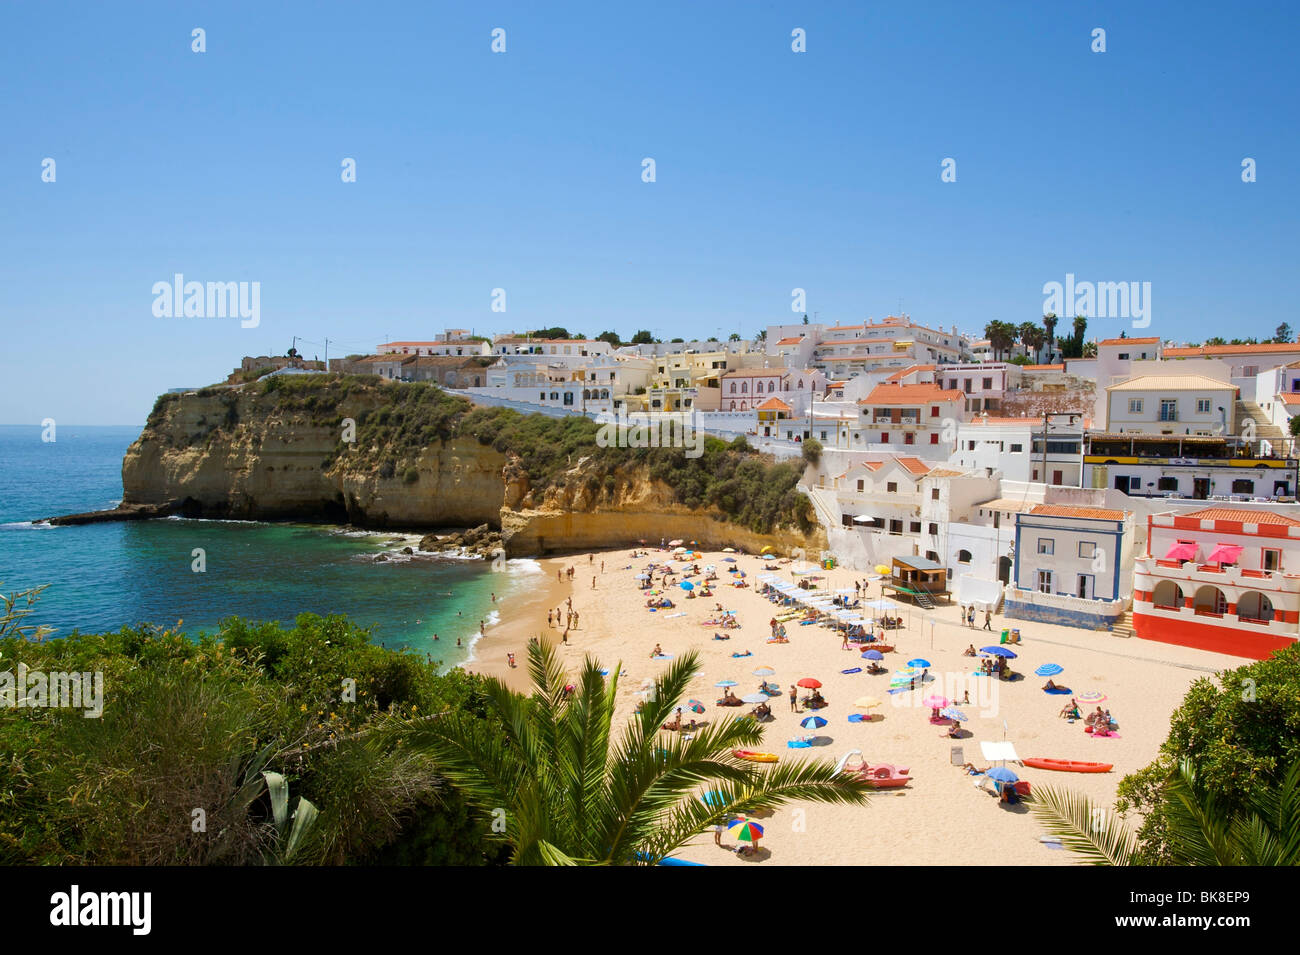 Beach of Carvoeiro, Algarve, Portugal, Europe - Stock Image